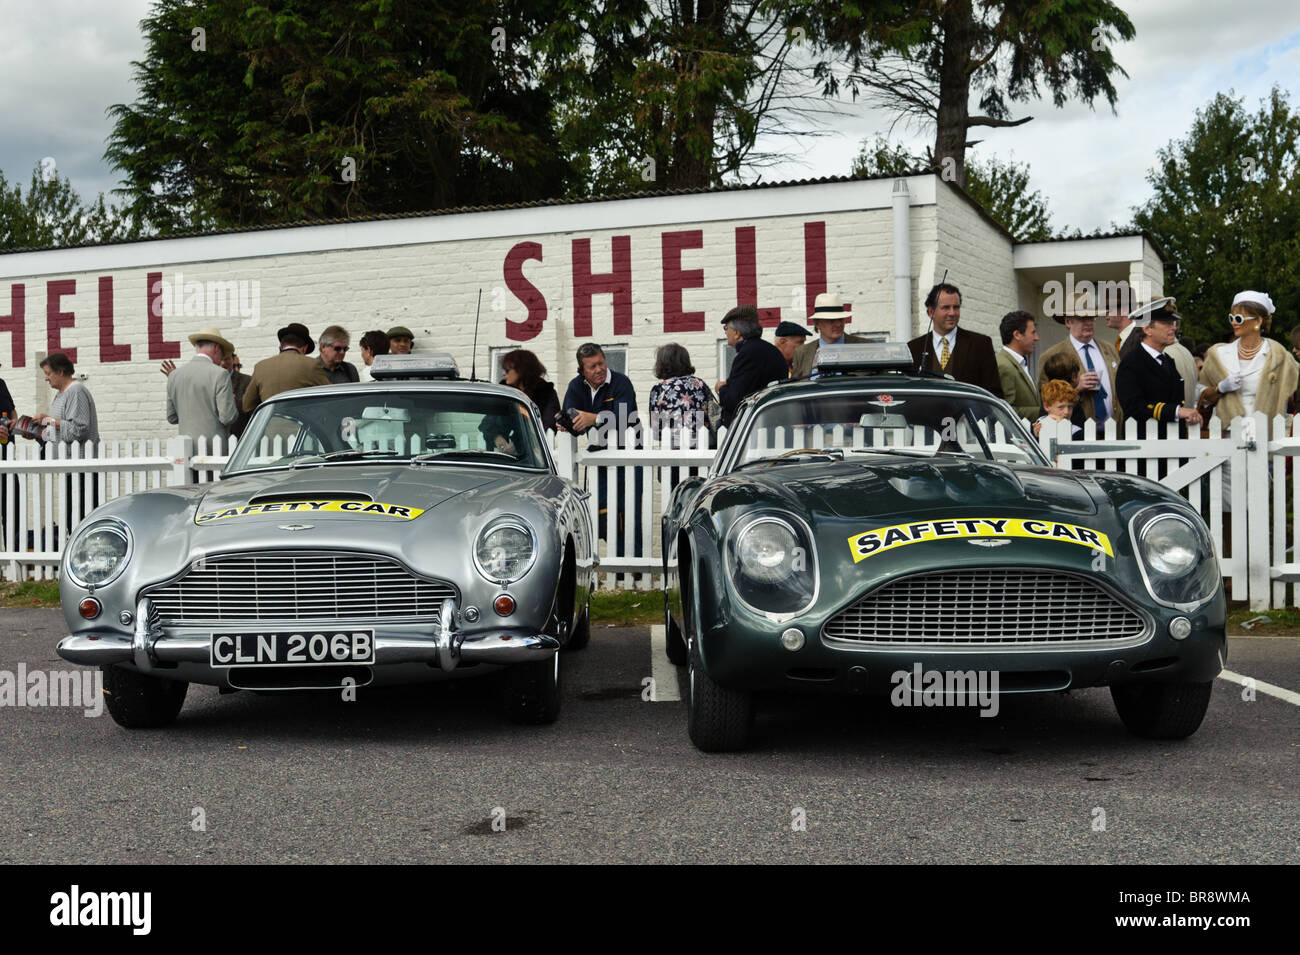 Aston Martin Safety Cars at The Goodwood Revival 2010, West Sussex 19th September 2010. Picture by Julie Edwards - Stock Image